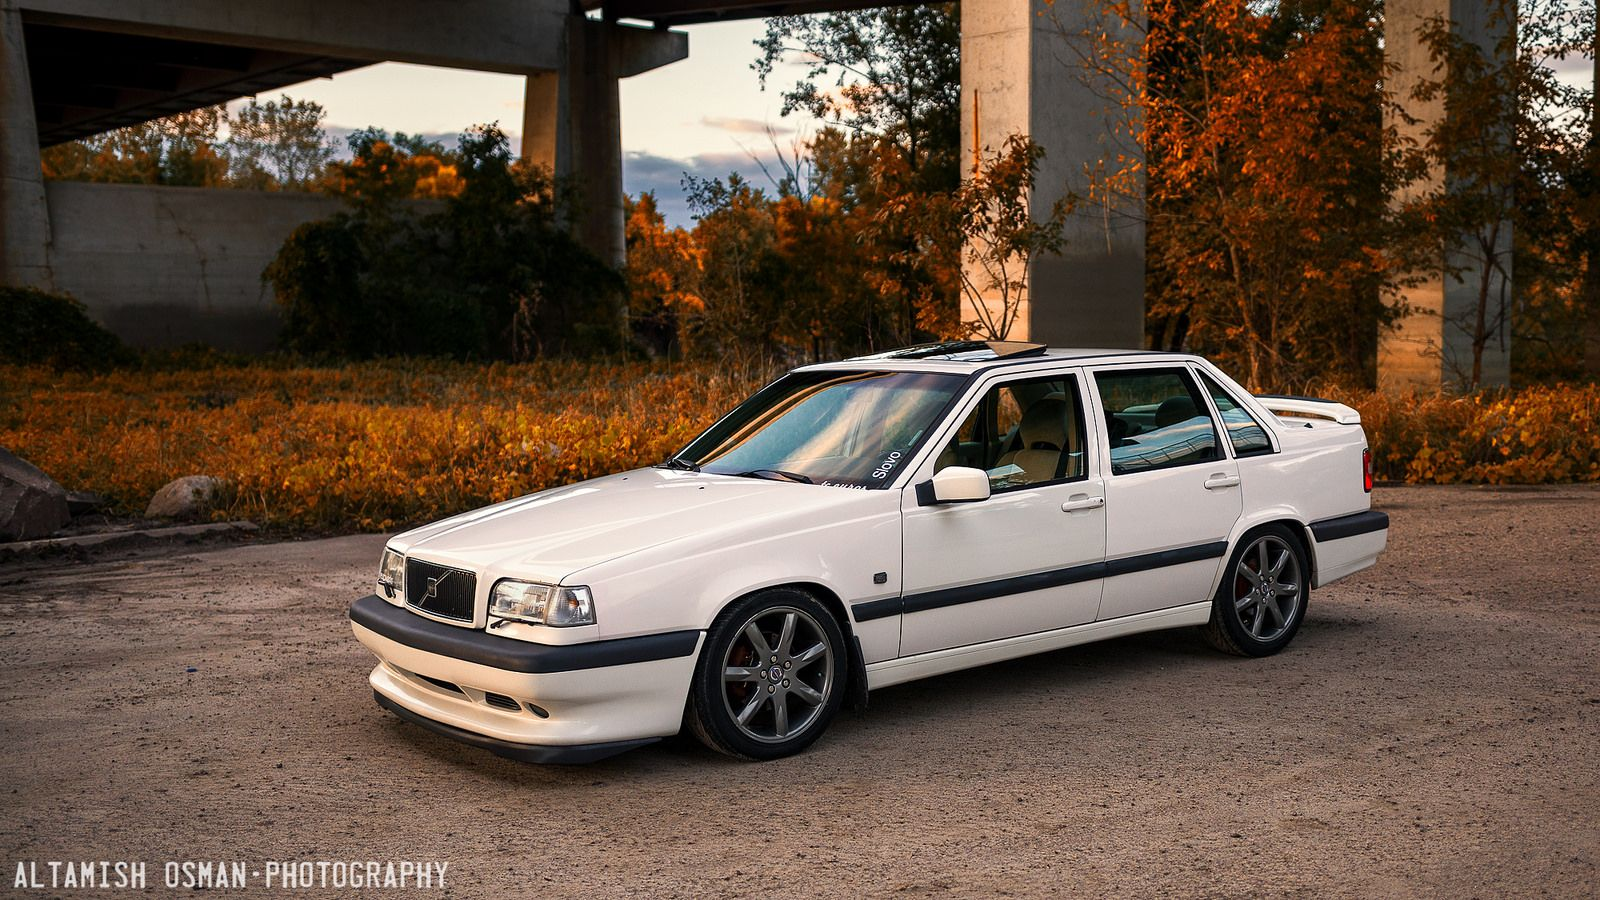 volvo kb buying wagon for forums forum enthusiasts a sale copyofcopyofimg views name size